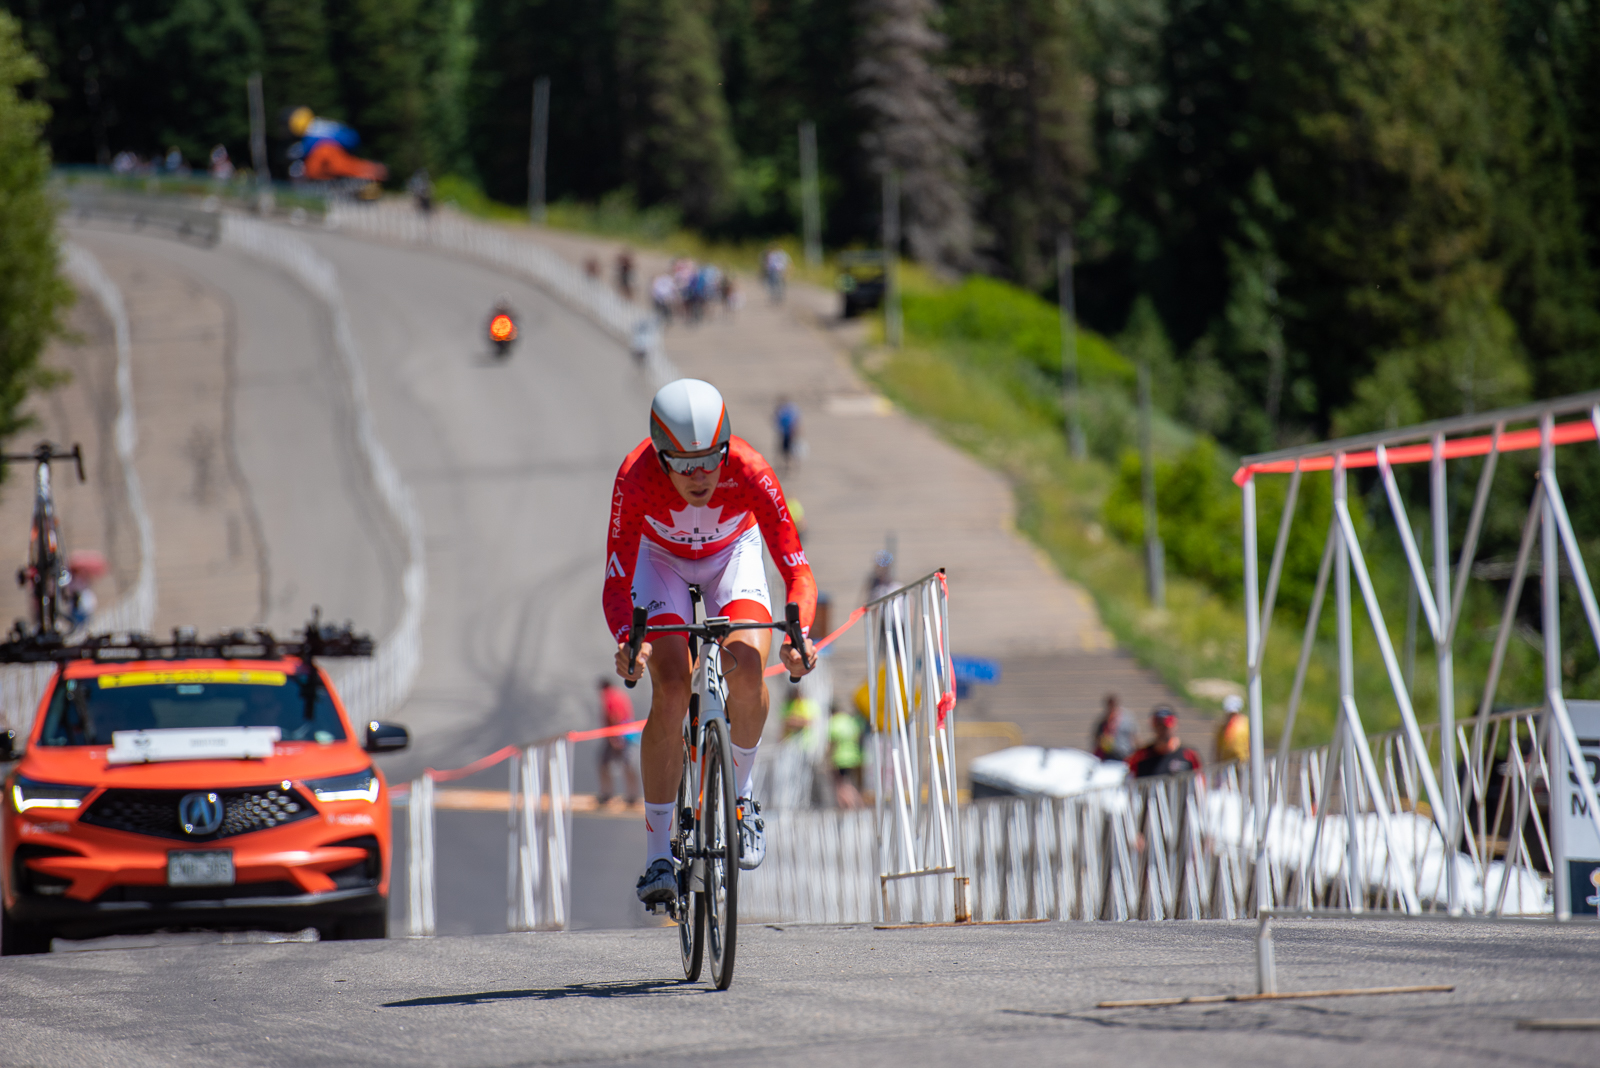 2017 Tour of Utah winner Rob Britton (Rally UHC Cycling) during the Prologue time trial. 2019 Tour of Utah. Photo by Steven L. Sheffield